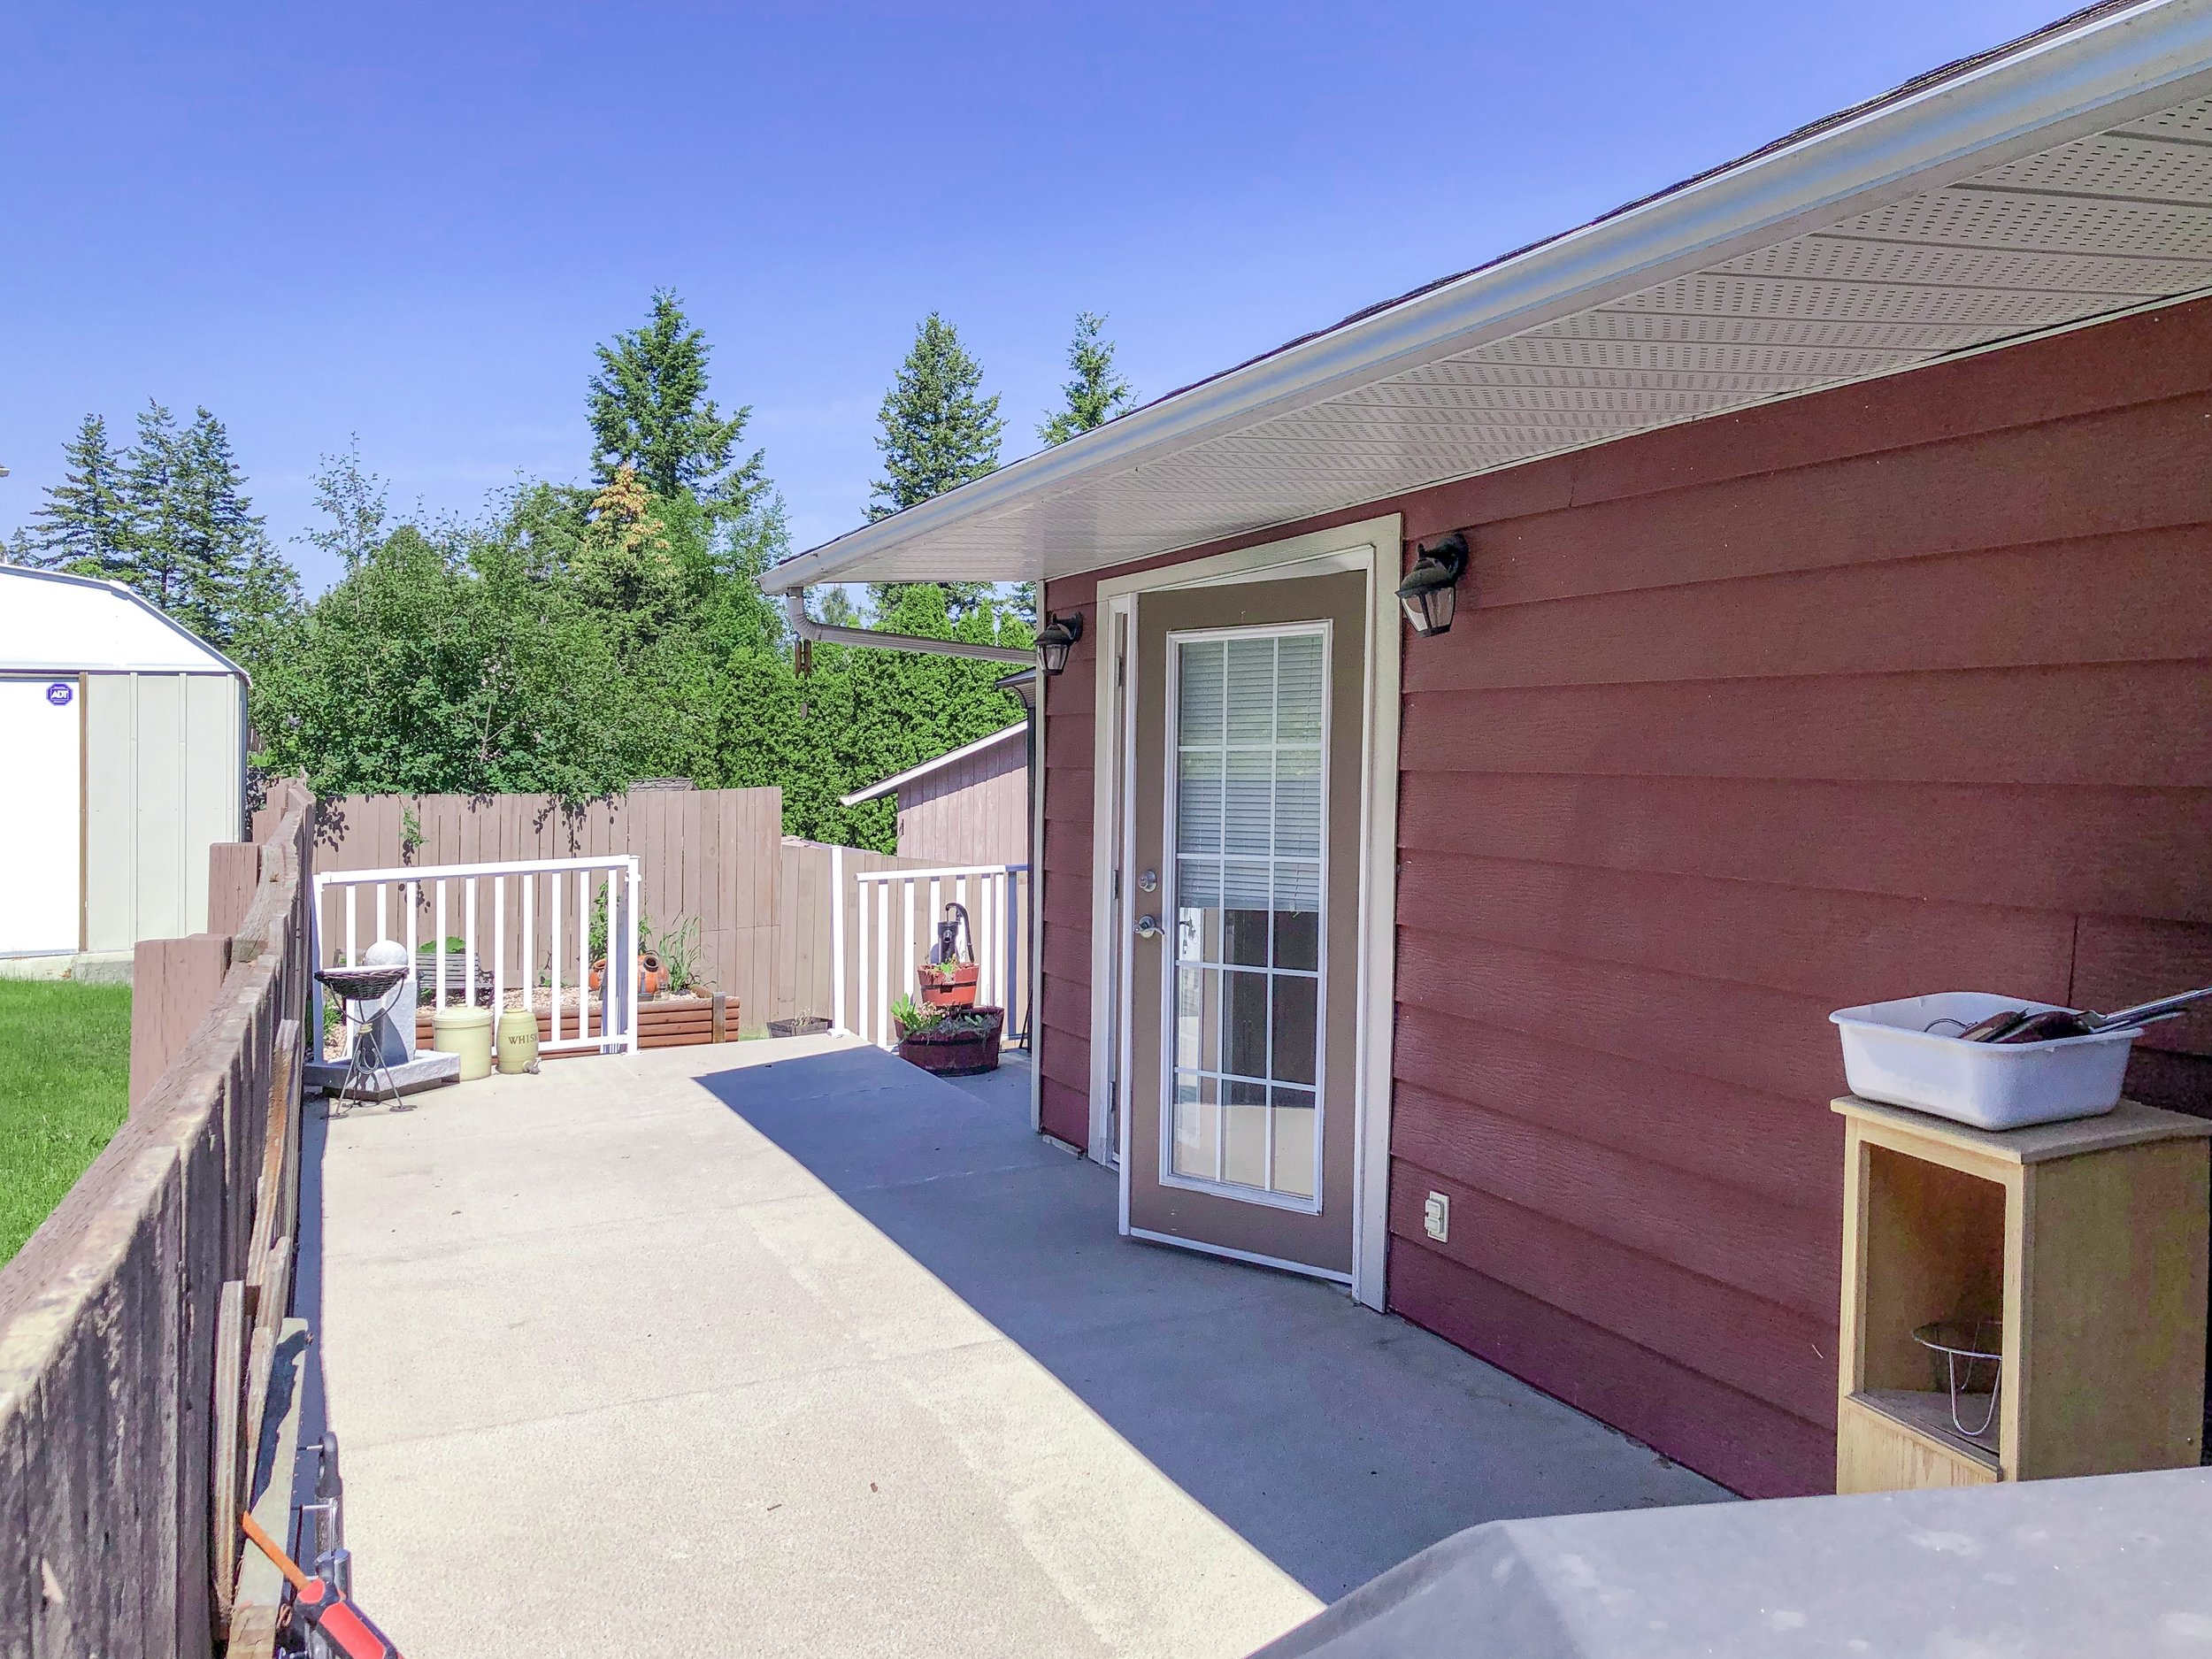 2032-sifton-avenue-kamloops-bc-aberdeen-for-sale-exterior-rear-deck.jpg